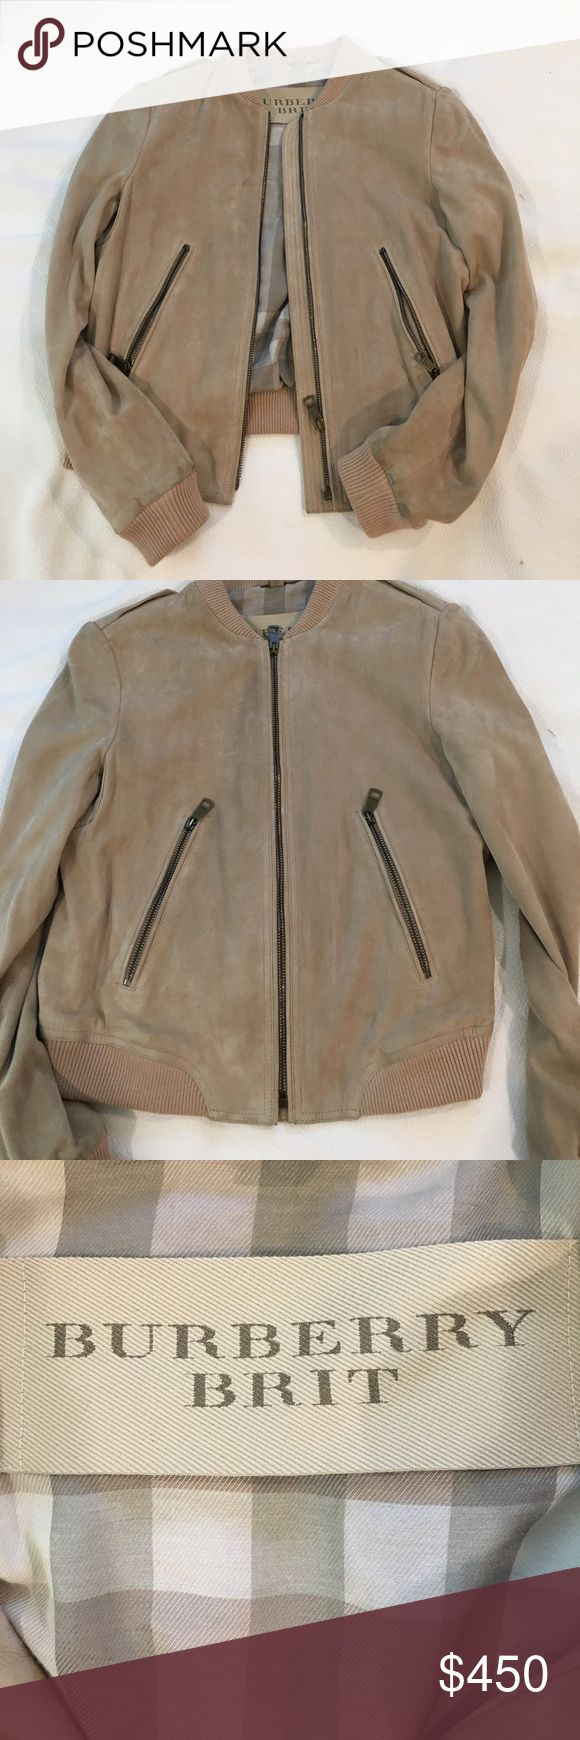 Burberry Brit suede bomber jacket Fantastic condition, only worn a handful of times. Originally purchased from Saks Off Fifth so tags do have some pen markings to indicate their price reductions. Burberry Jackets & Coats